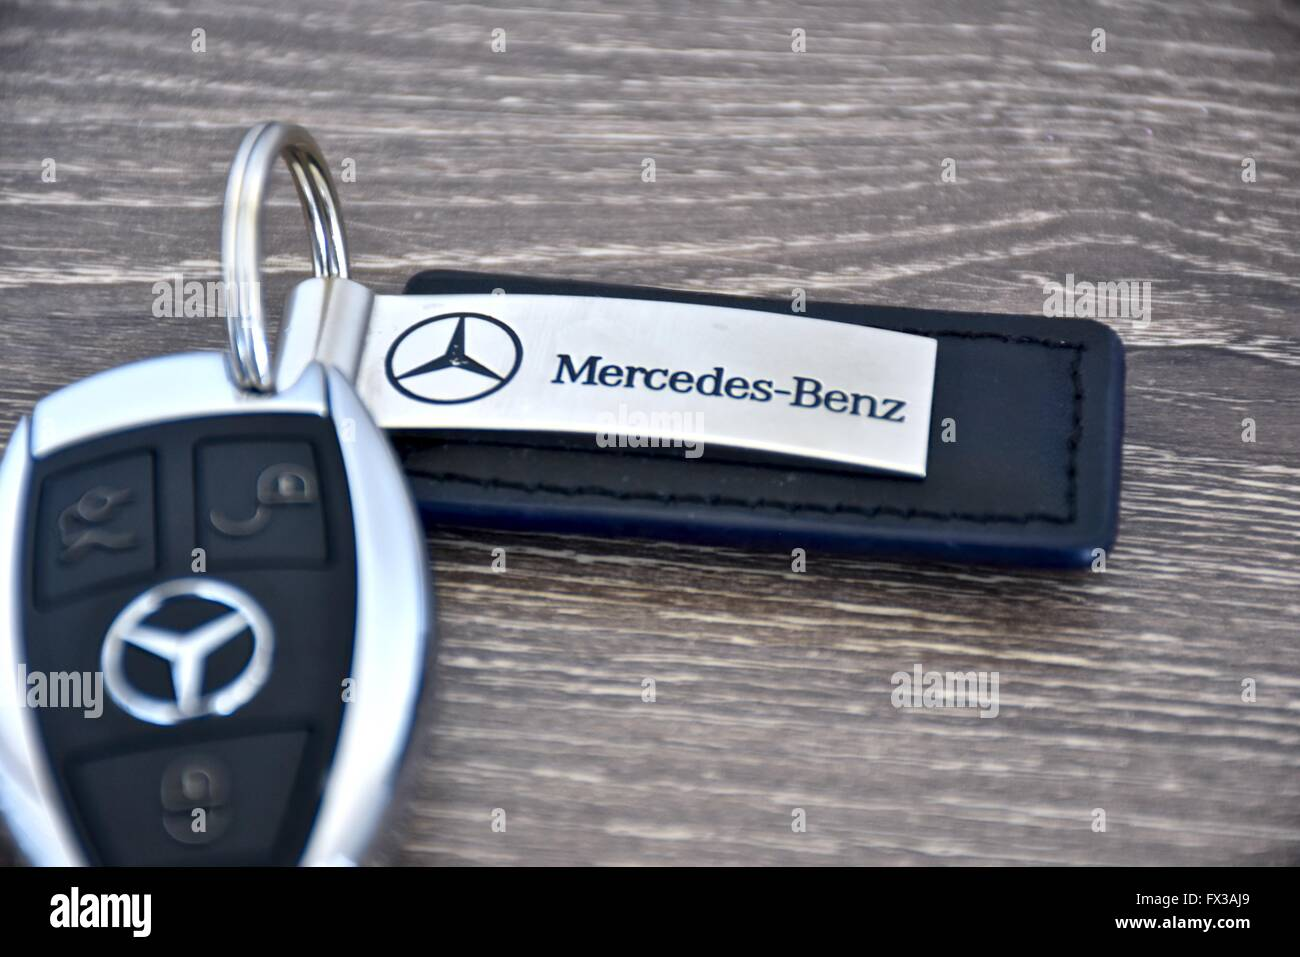 A mercedes benz key fob laying on a wood surface stock for Mercedes benz key fob